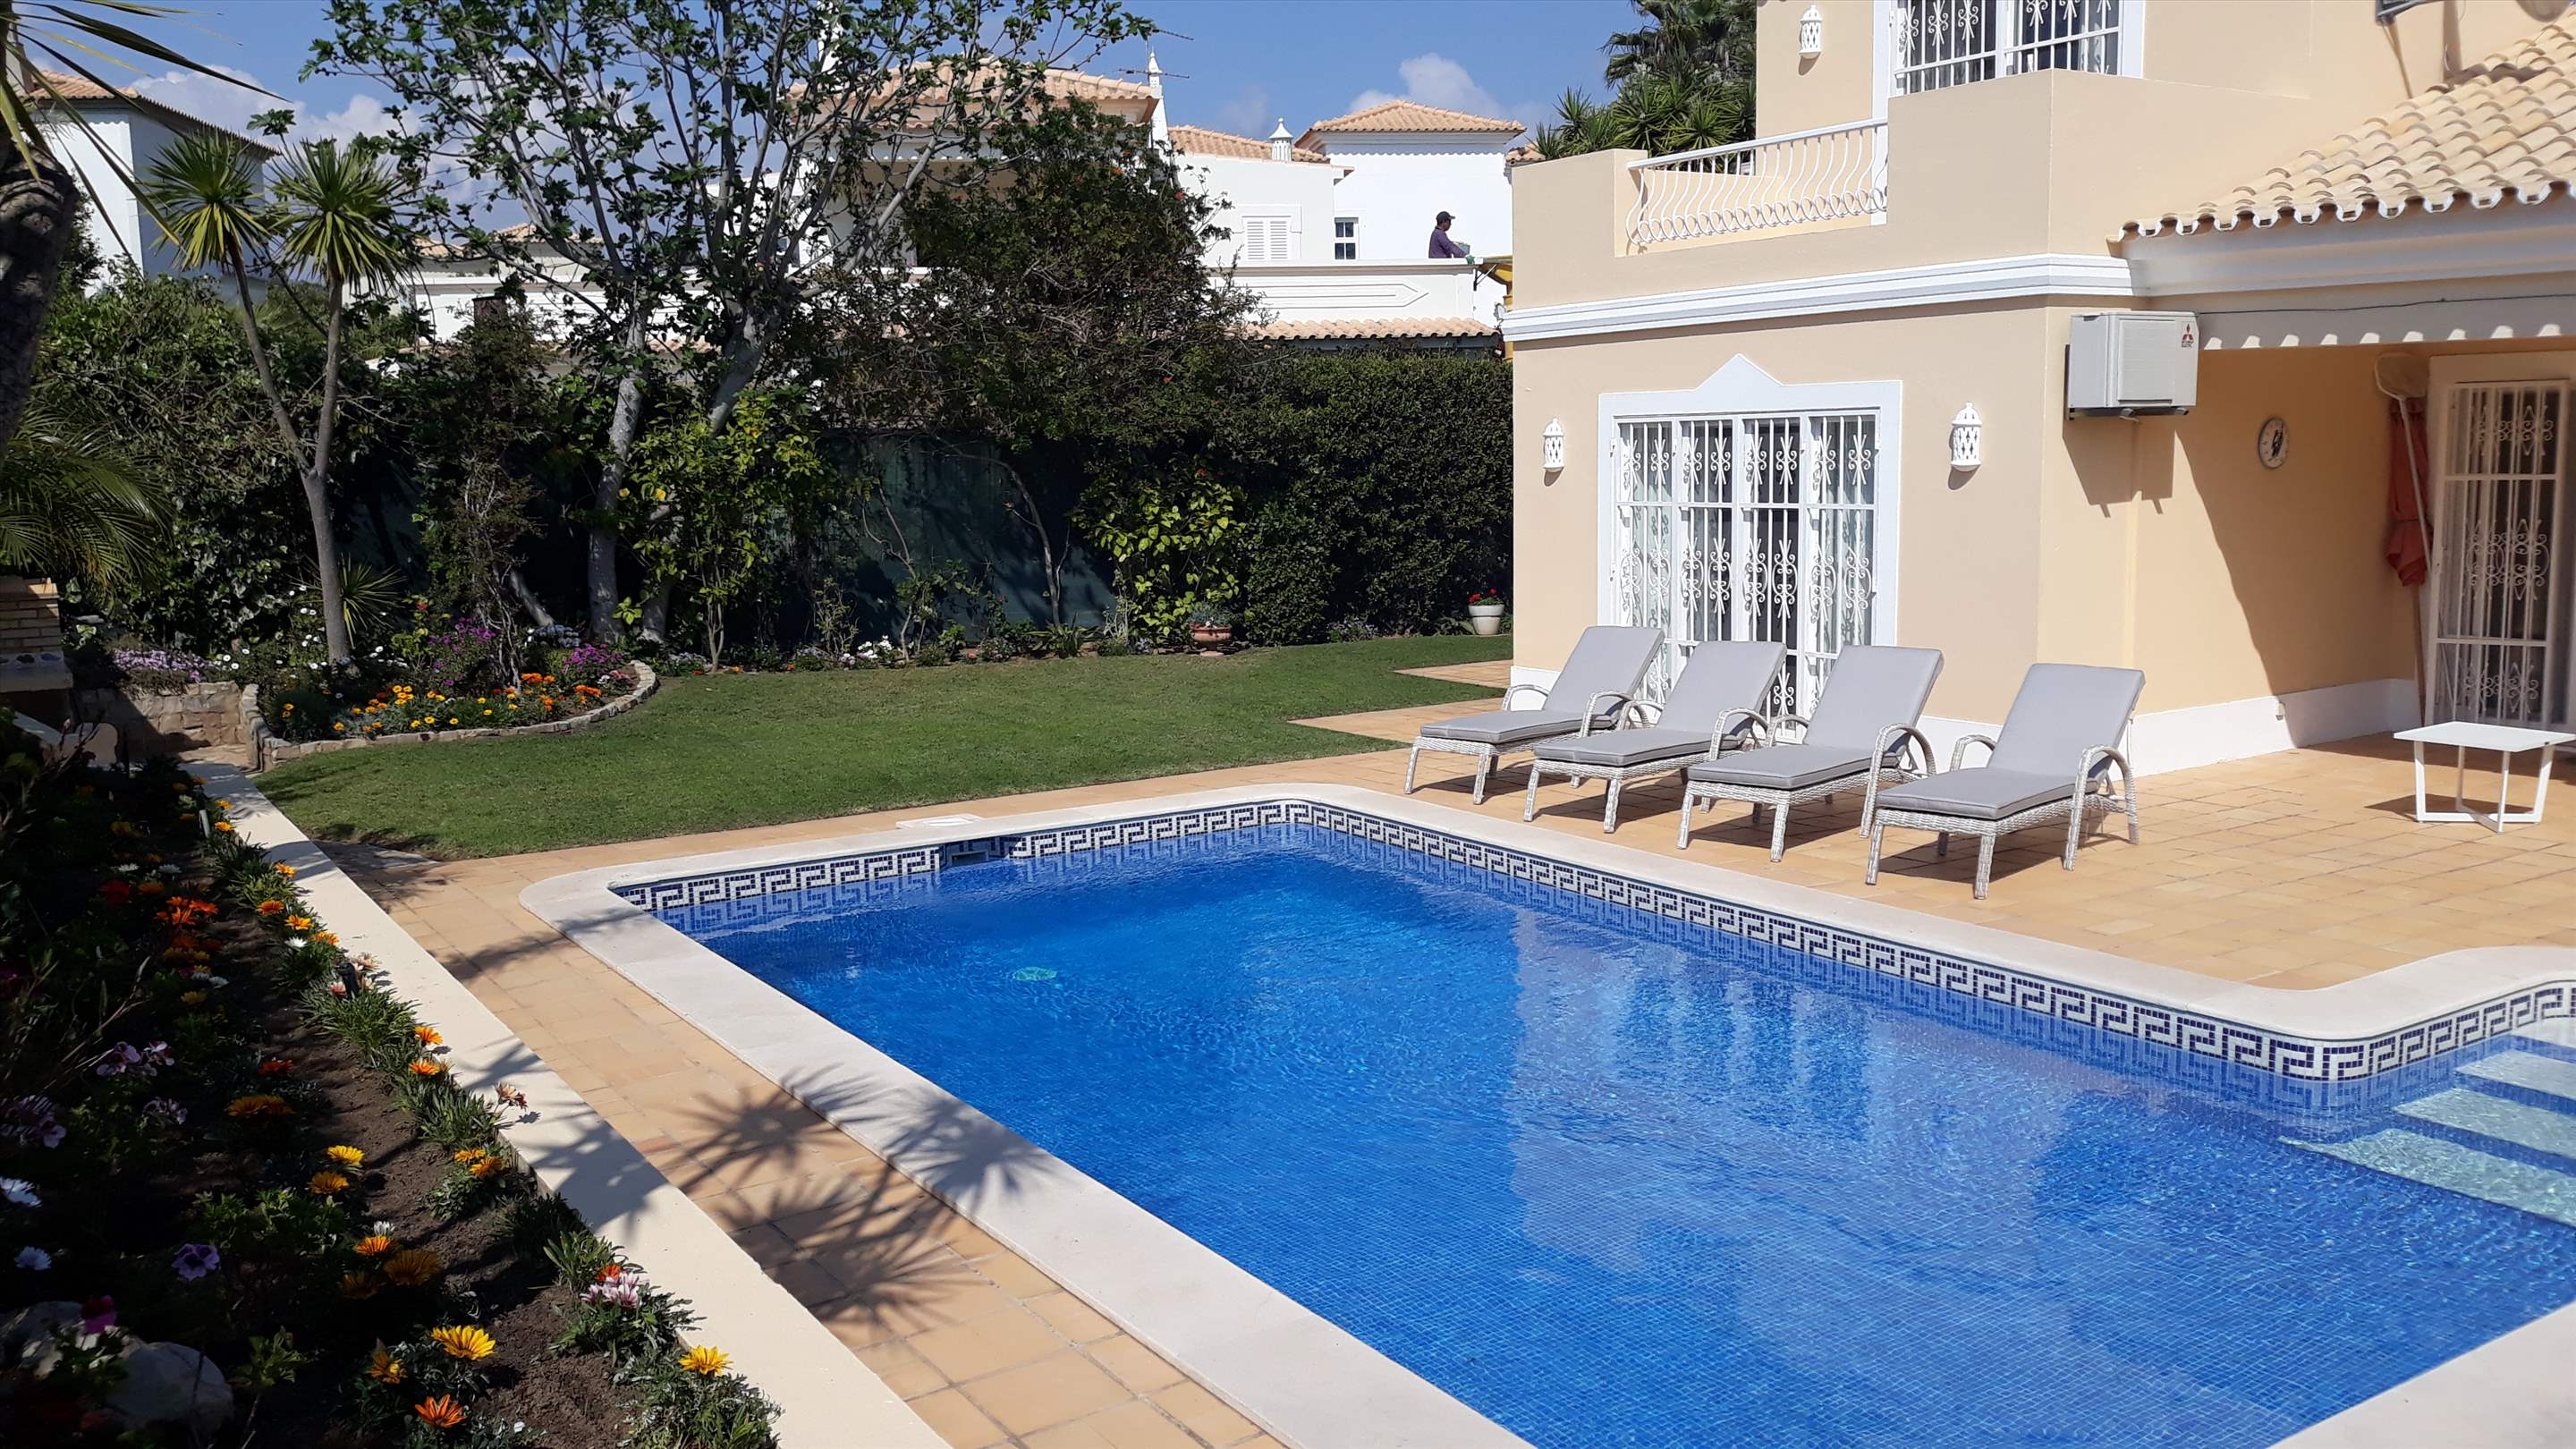 Casa Rosada, 3 bedroom villa in Vale do Lobo, Algarve Photo #6